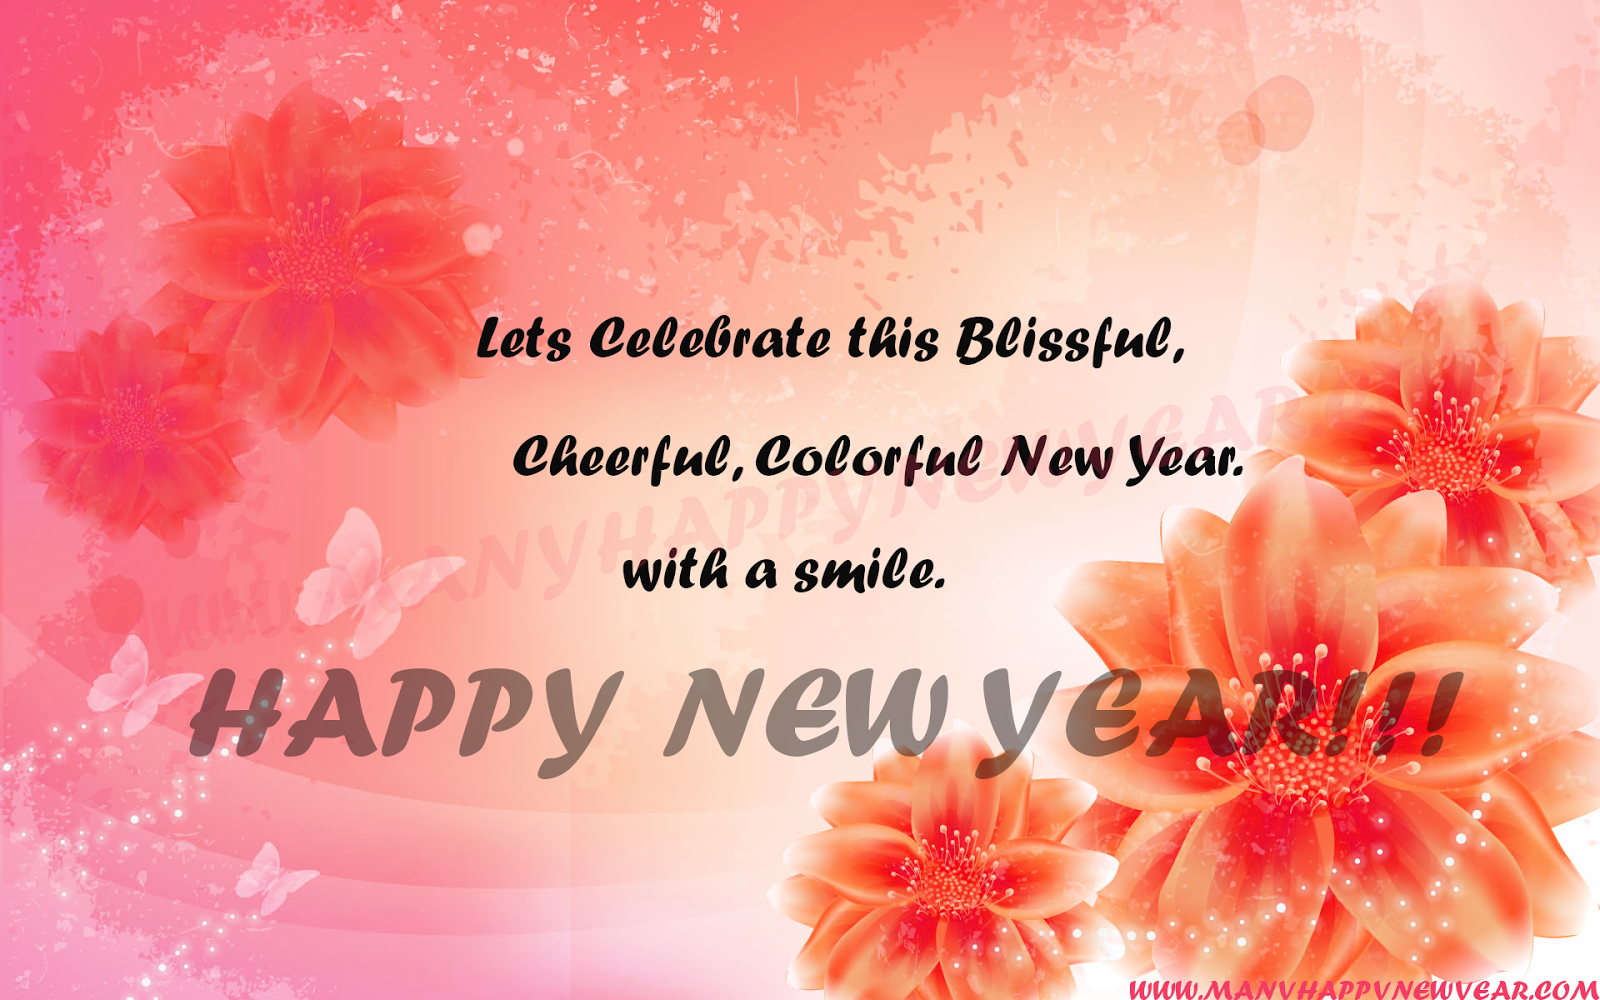 Happy new year 2018 Status New year status messages quotes wishes message images 2k18